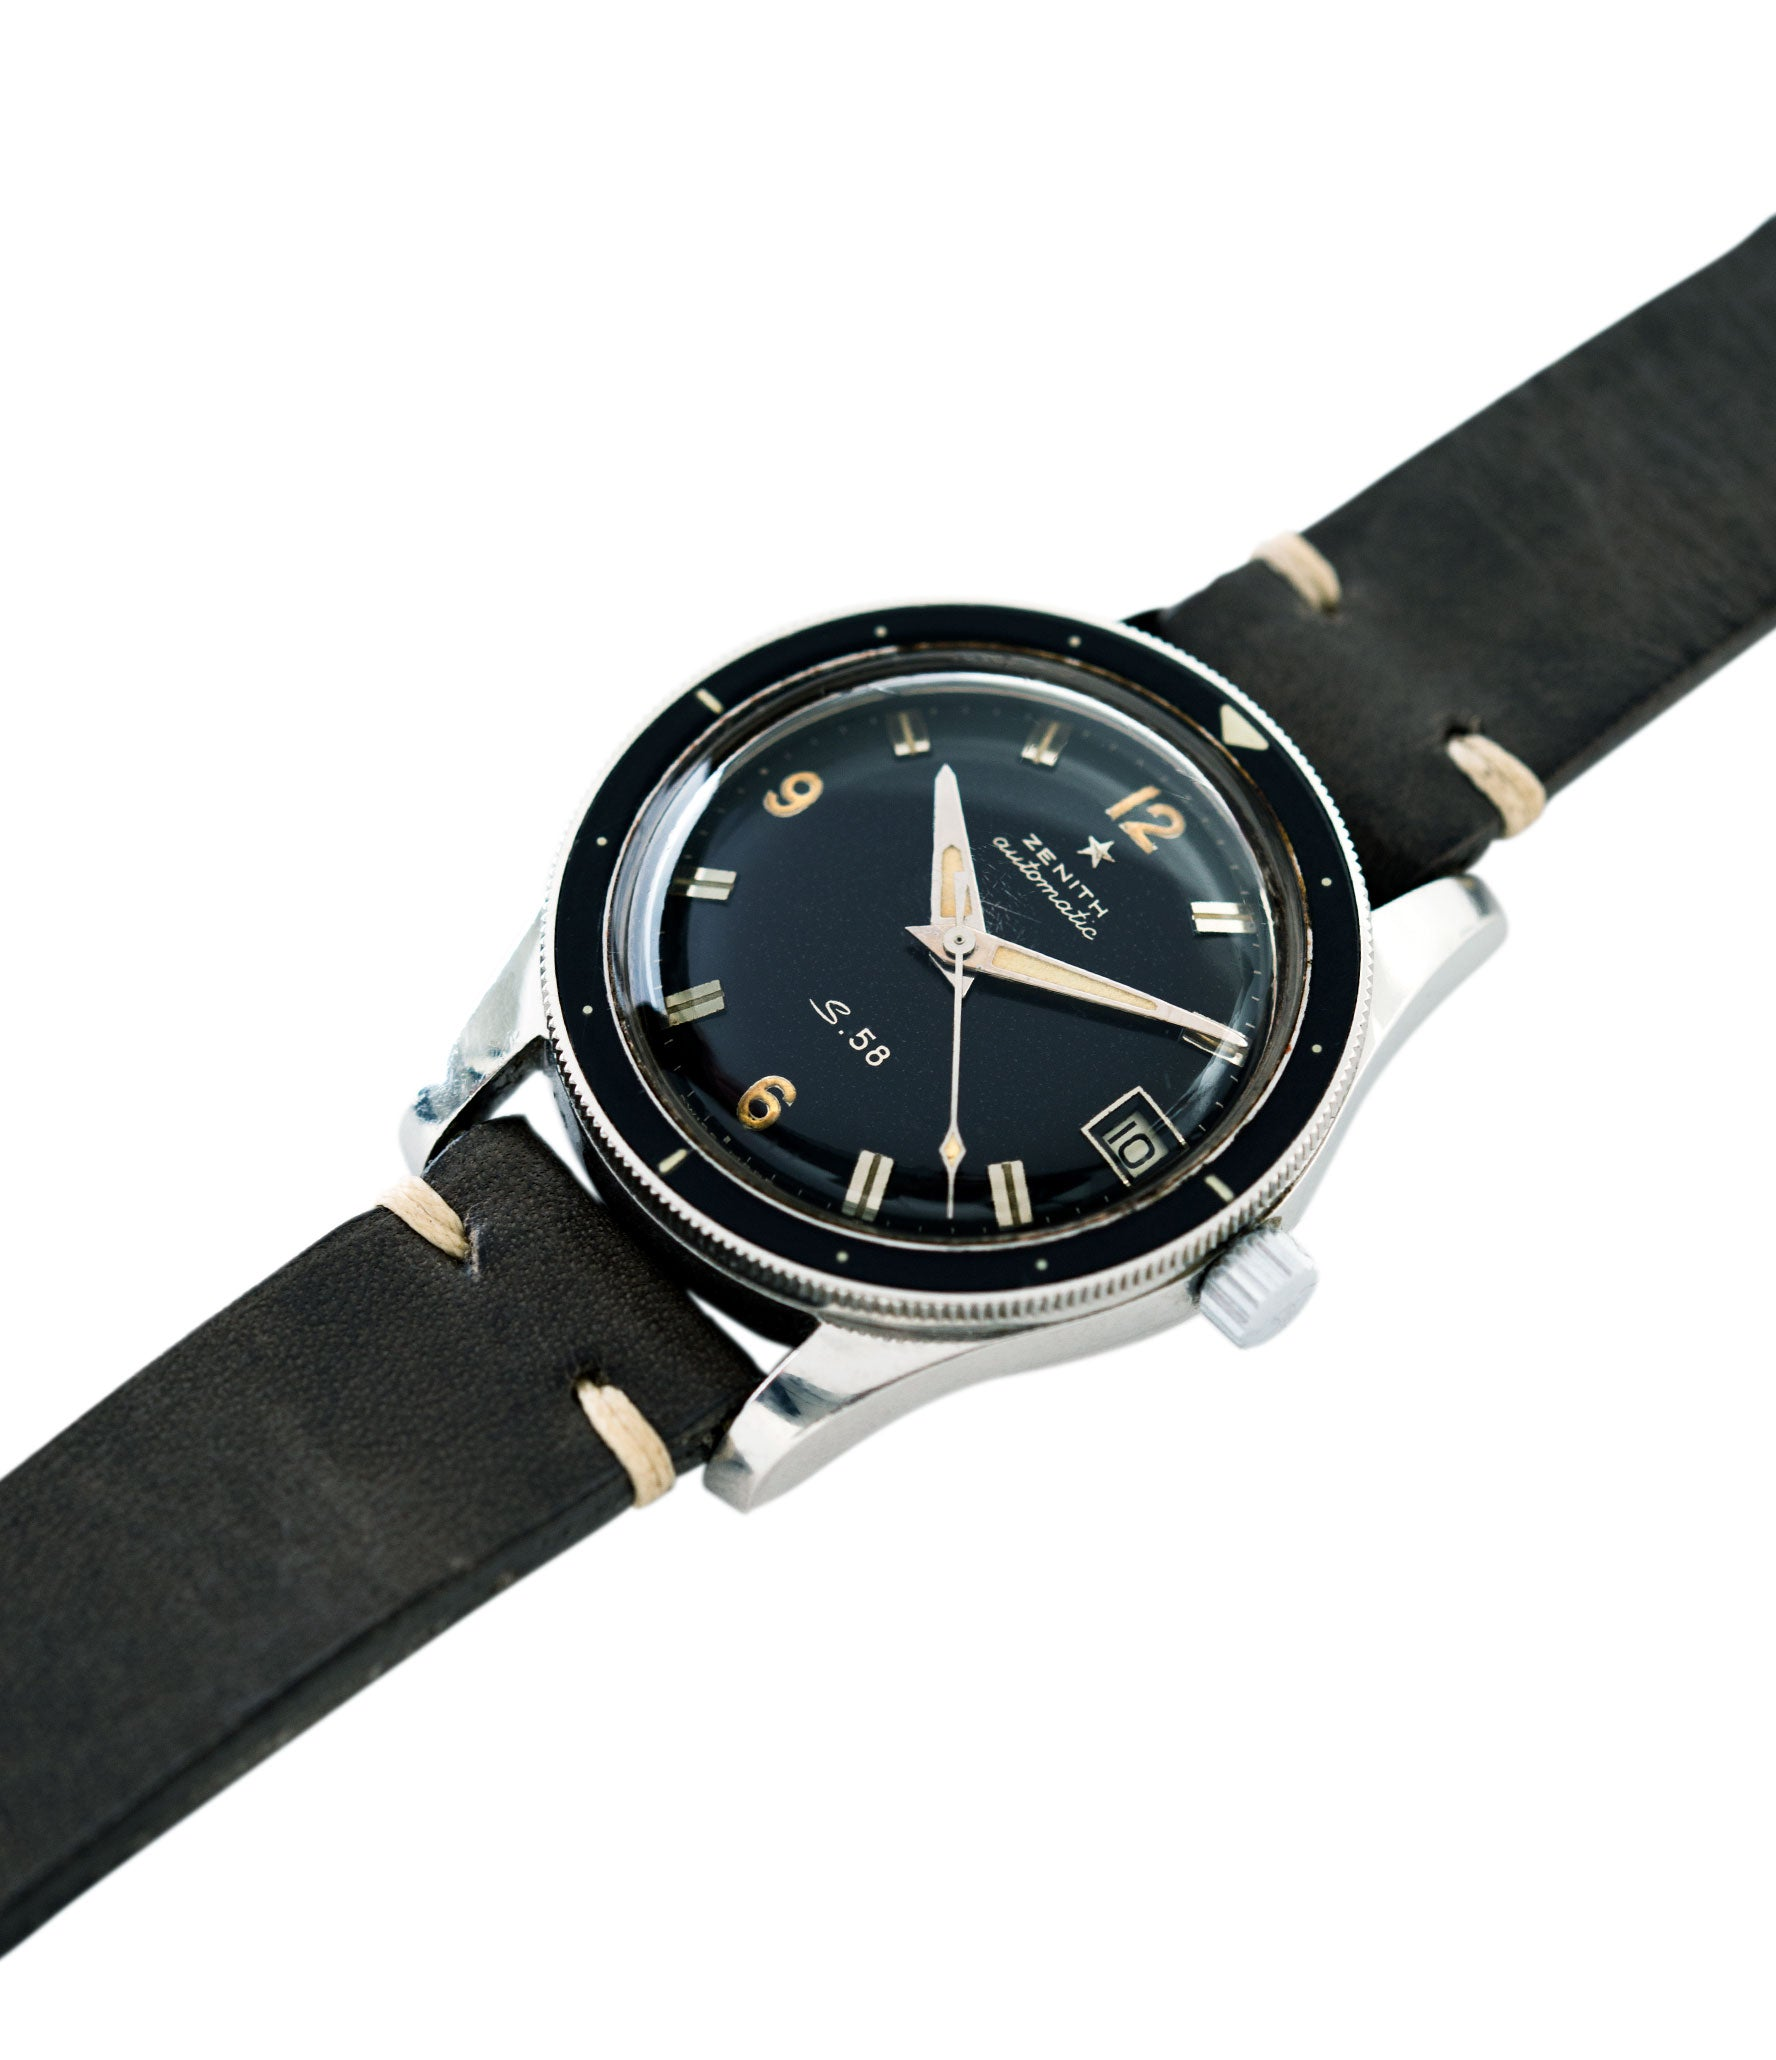 steel vintage watch S.58 Zenith Cal 2542 PC vintage steel divers watch bakelite bezel for sale online at A Collected Man London UK specialist rare vintage watches